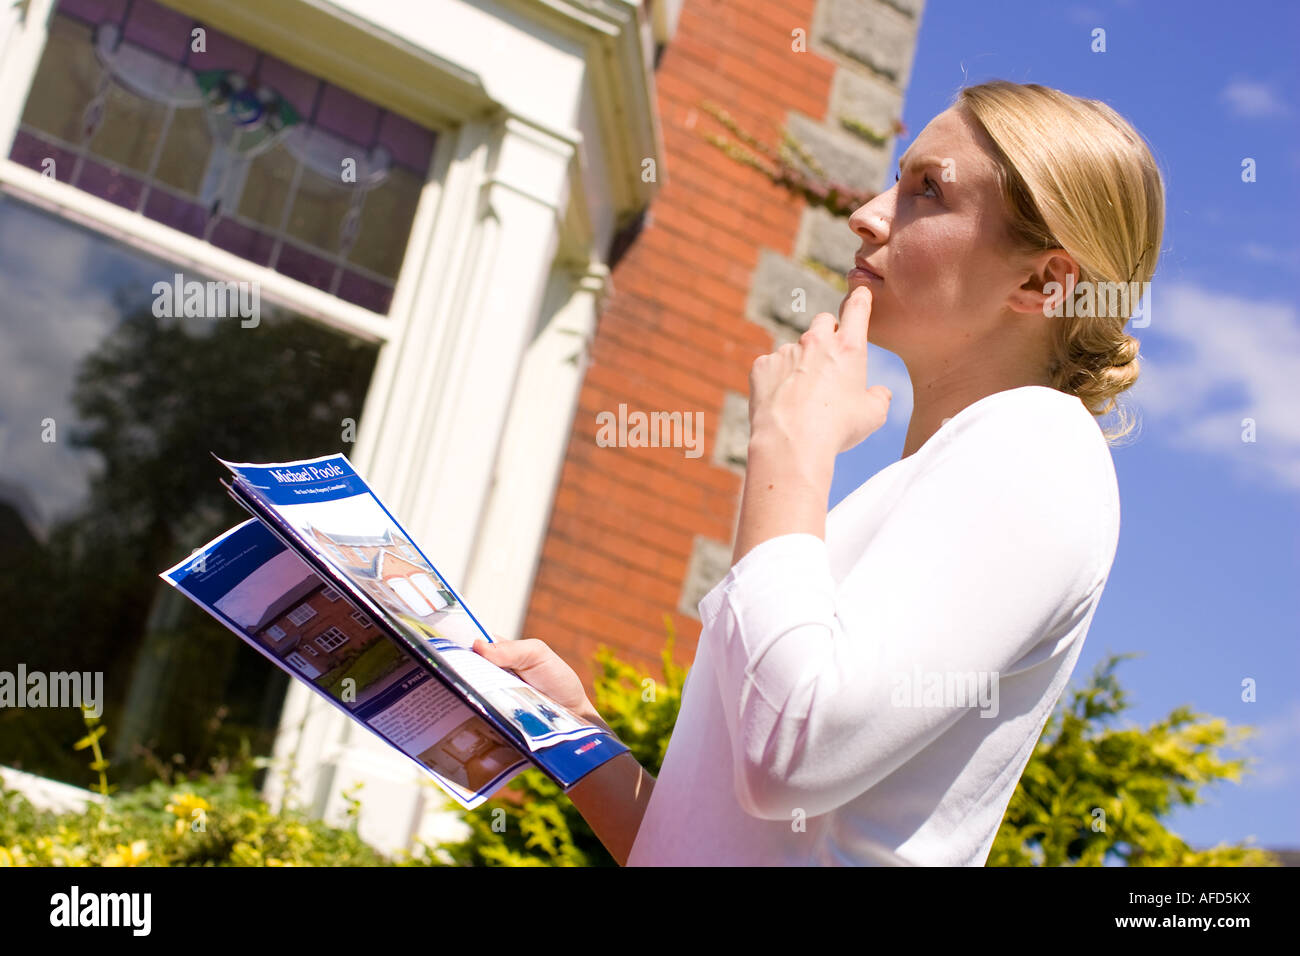 woman with details of a house standing outside it - Stock Image